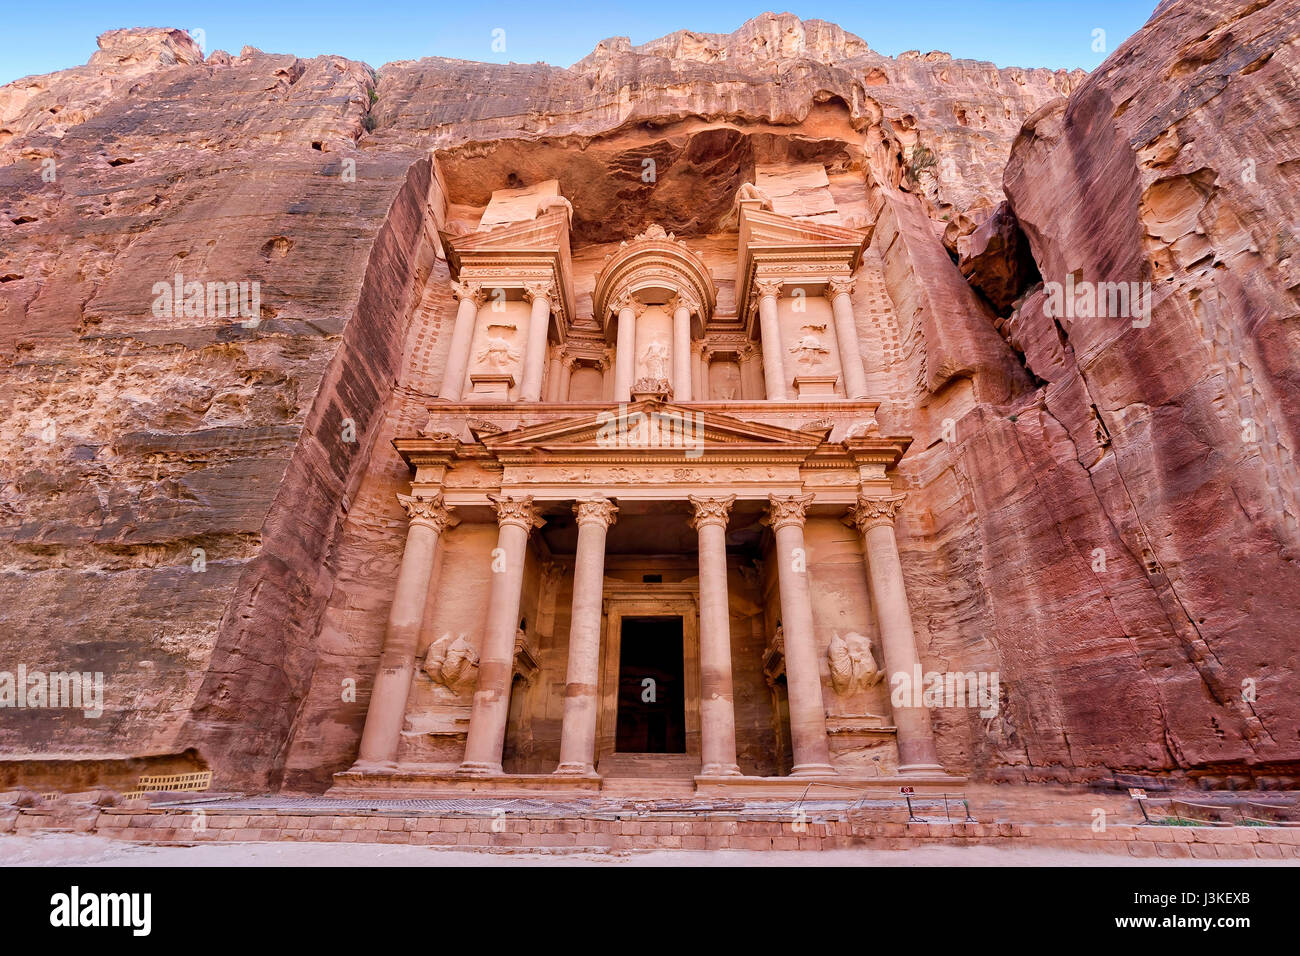 Frontal view of 'The Treasury', one of the most elaborate temples in the ancient Arab Nabatean Kingdom city - Stock Image